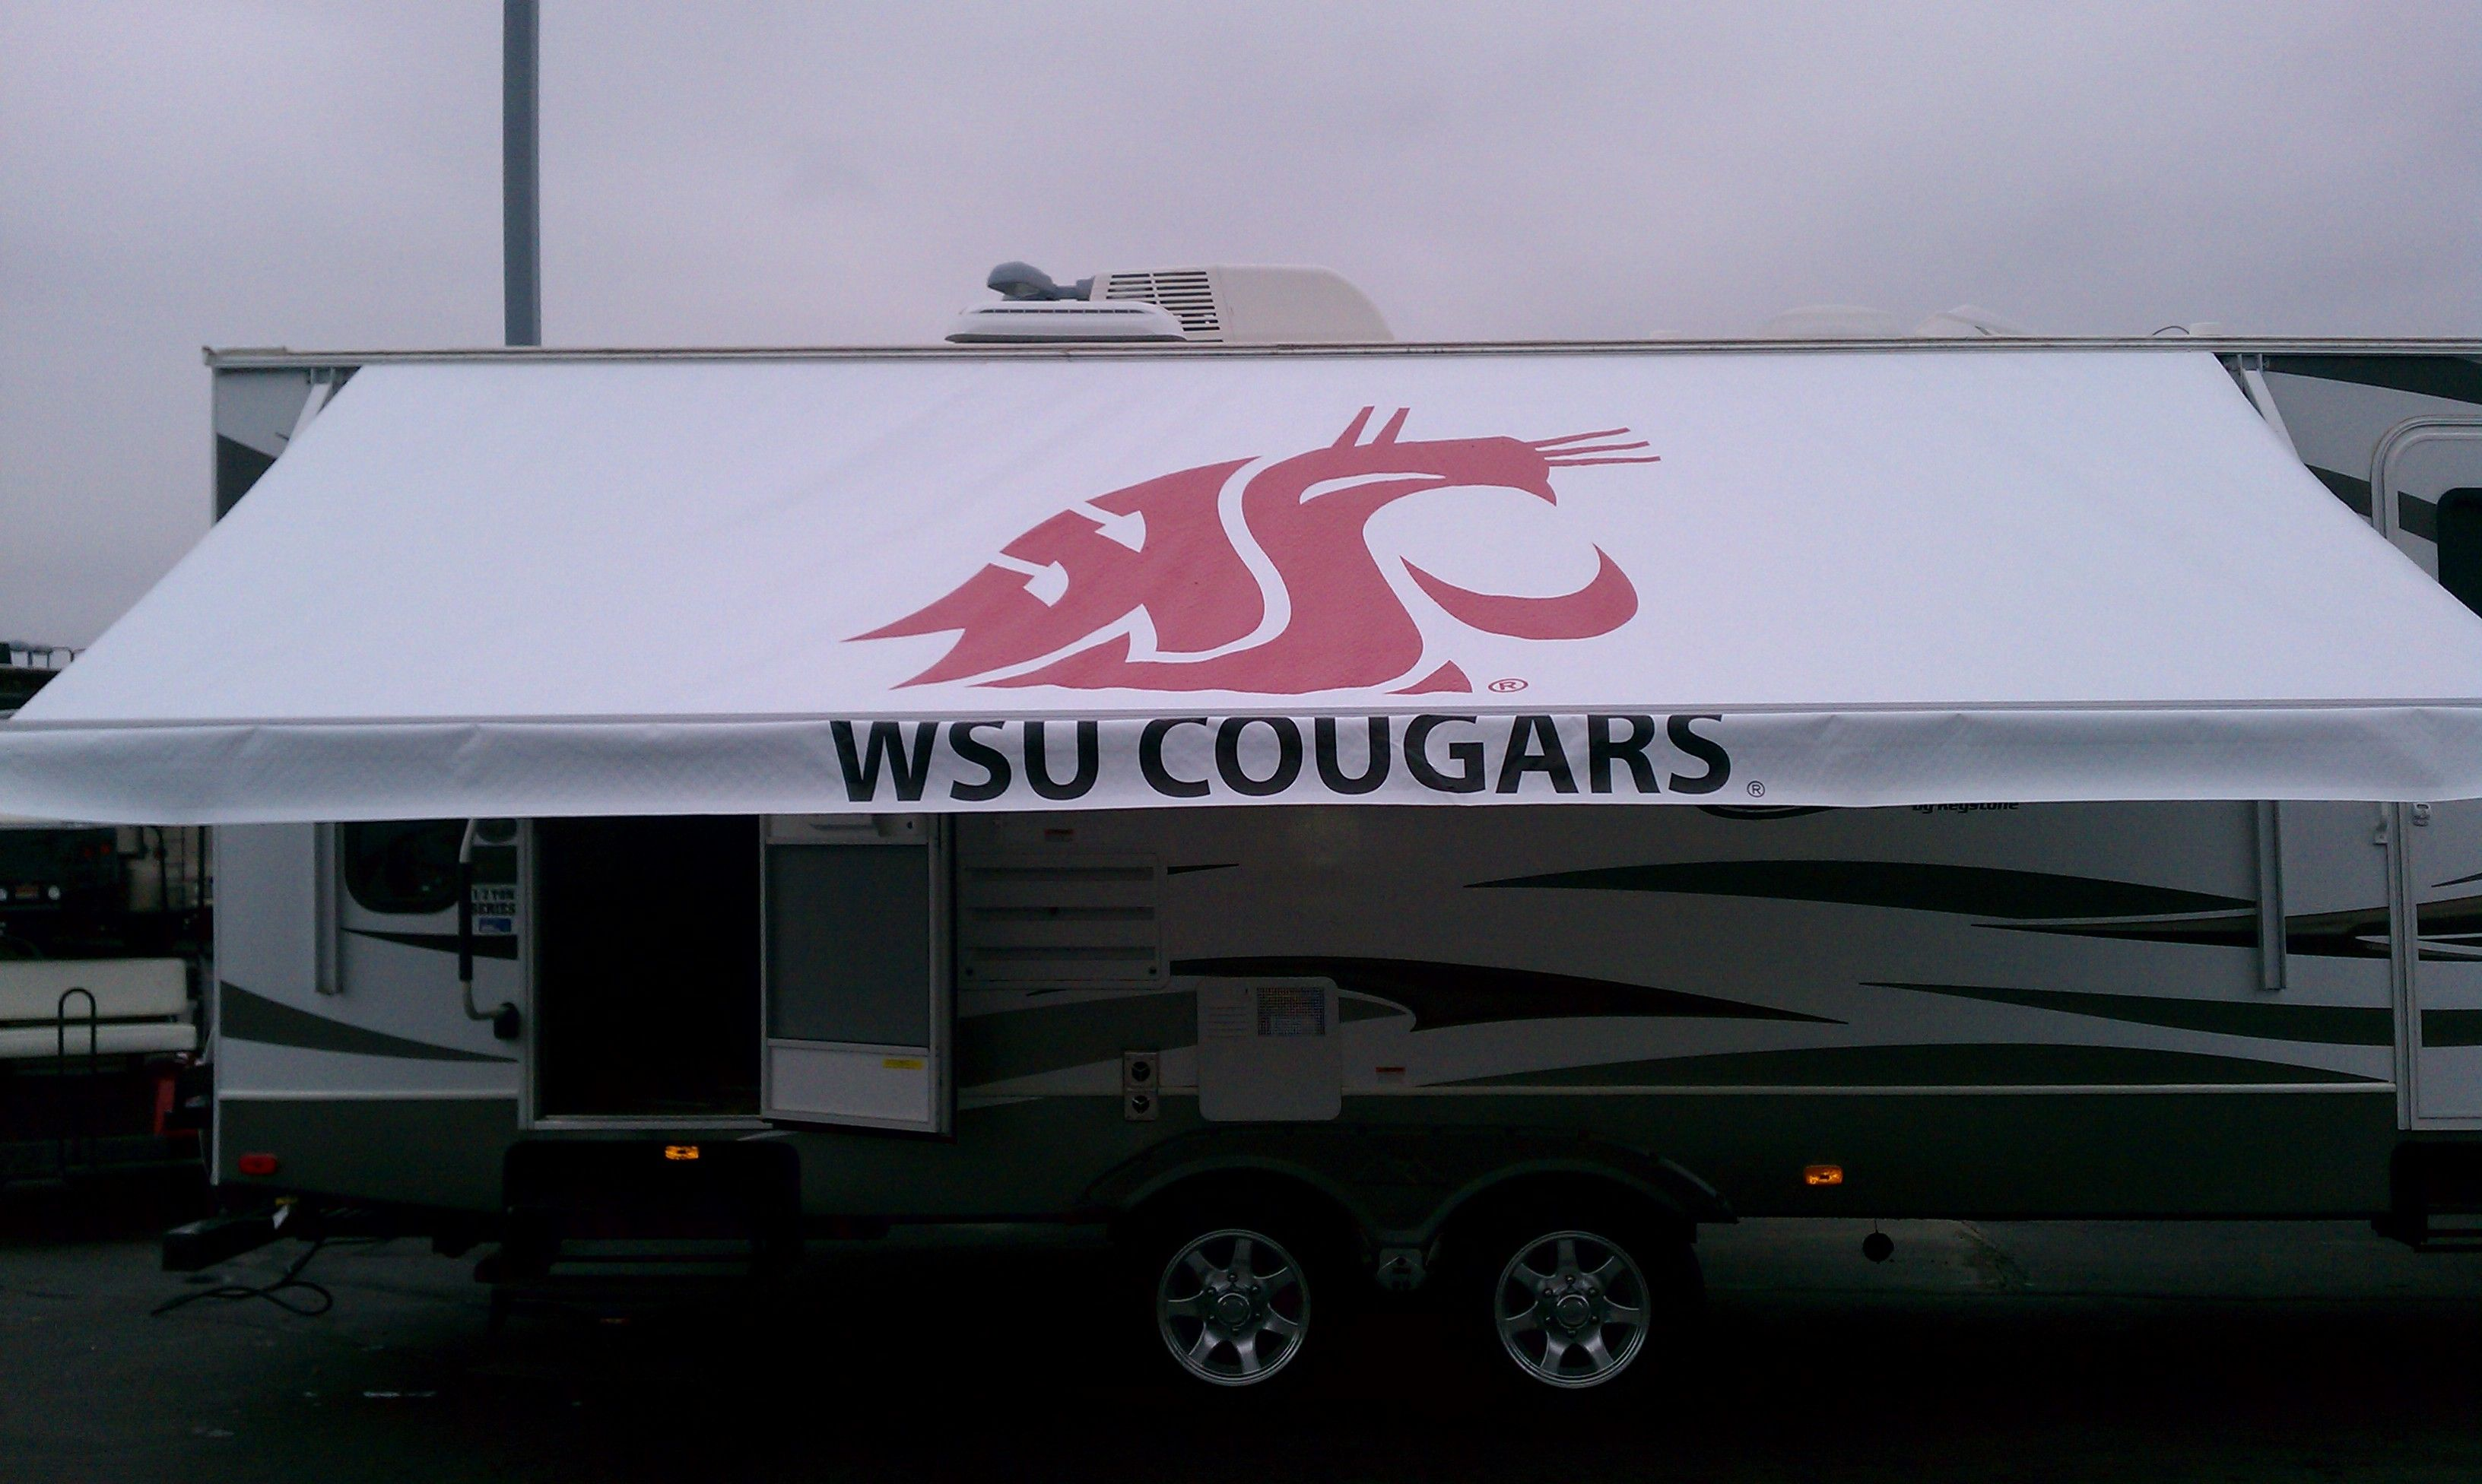 rvs awnings golden ggt s gait com yp awning mip nc rv trailers trailer hwy concord horse davidson